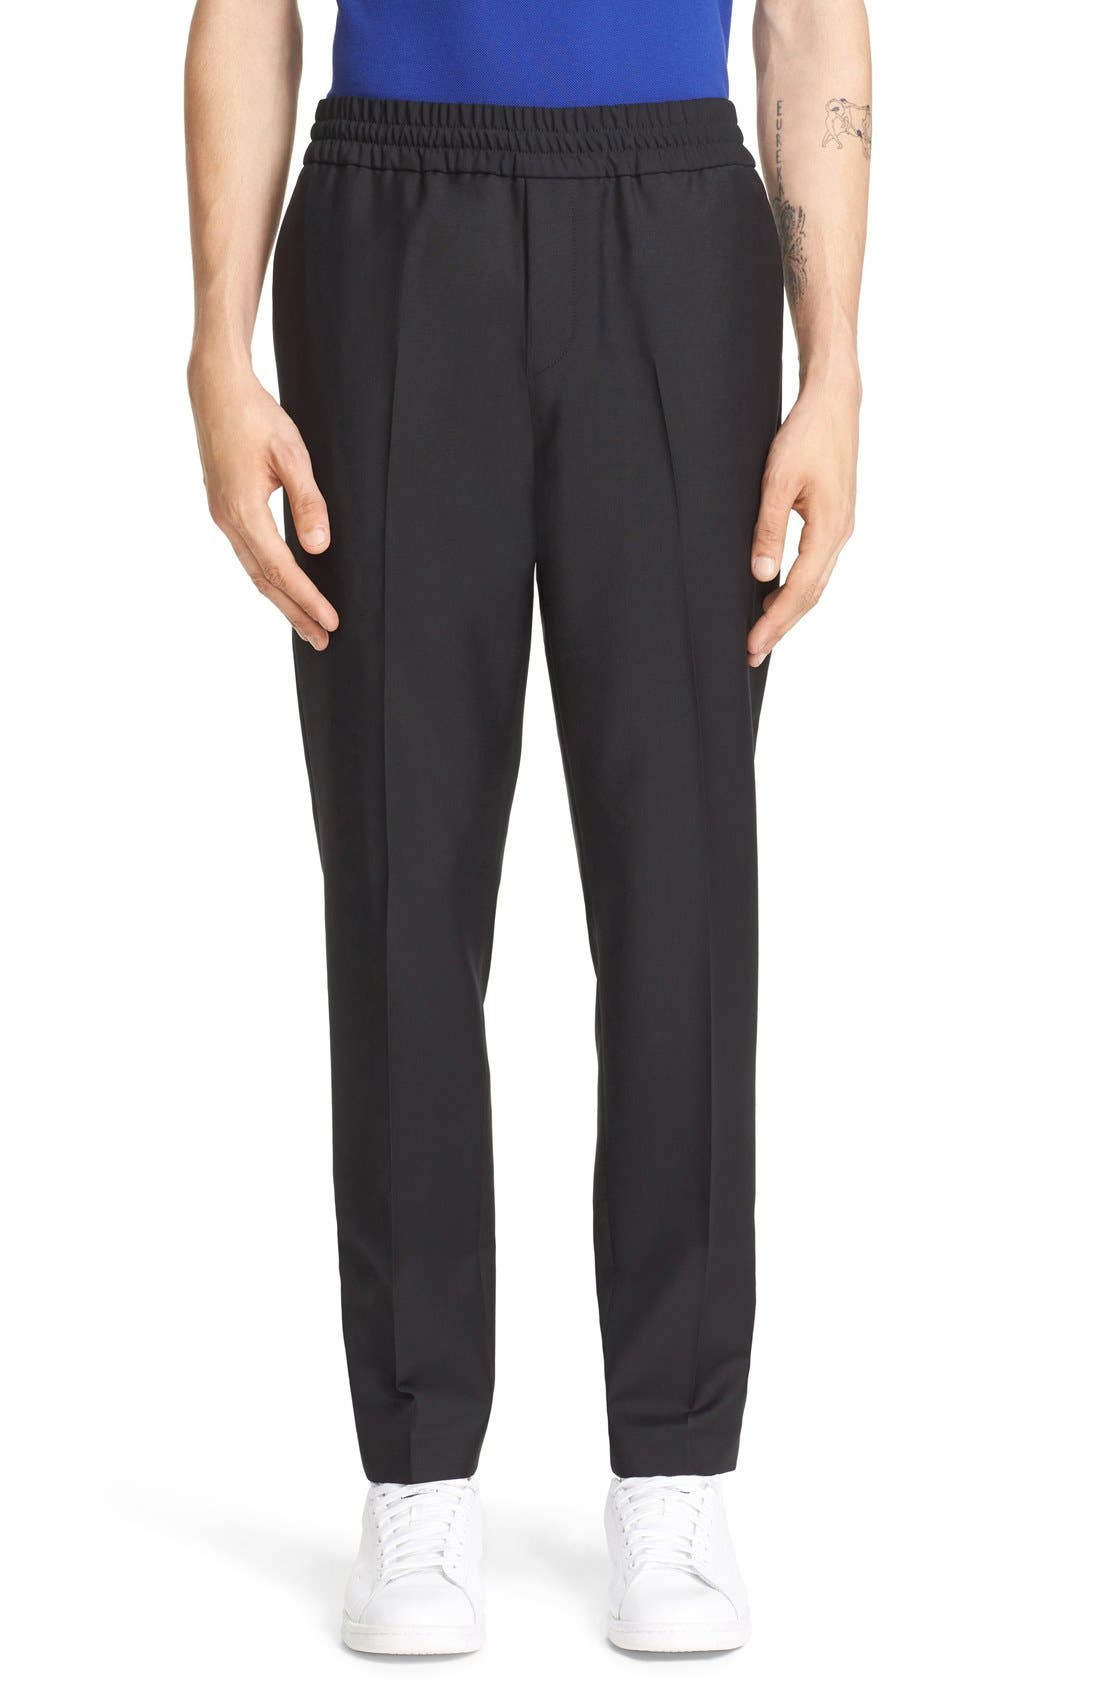 ACNE Studios 'Ryder' Wool Pants